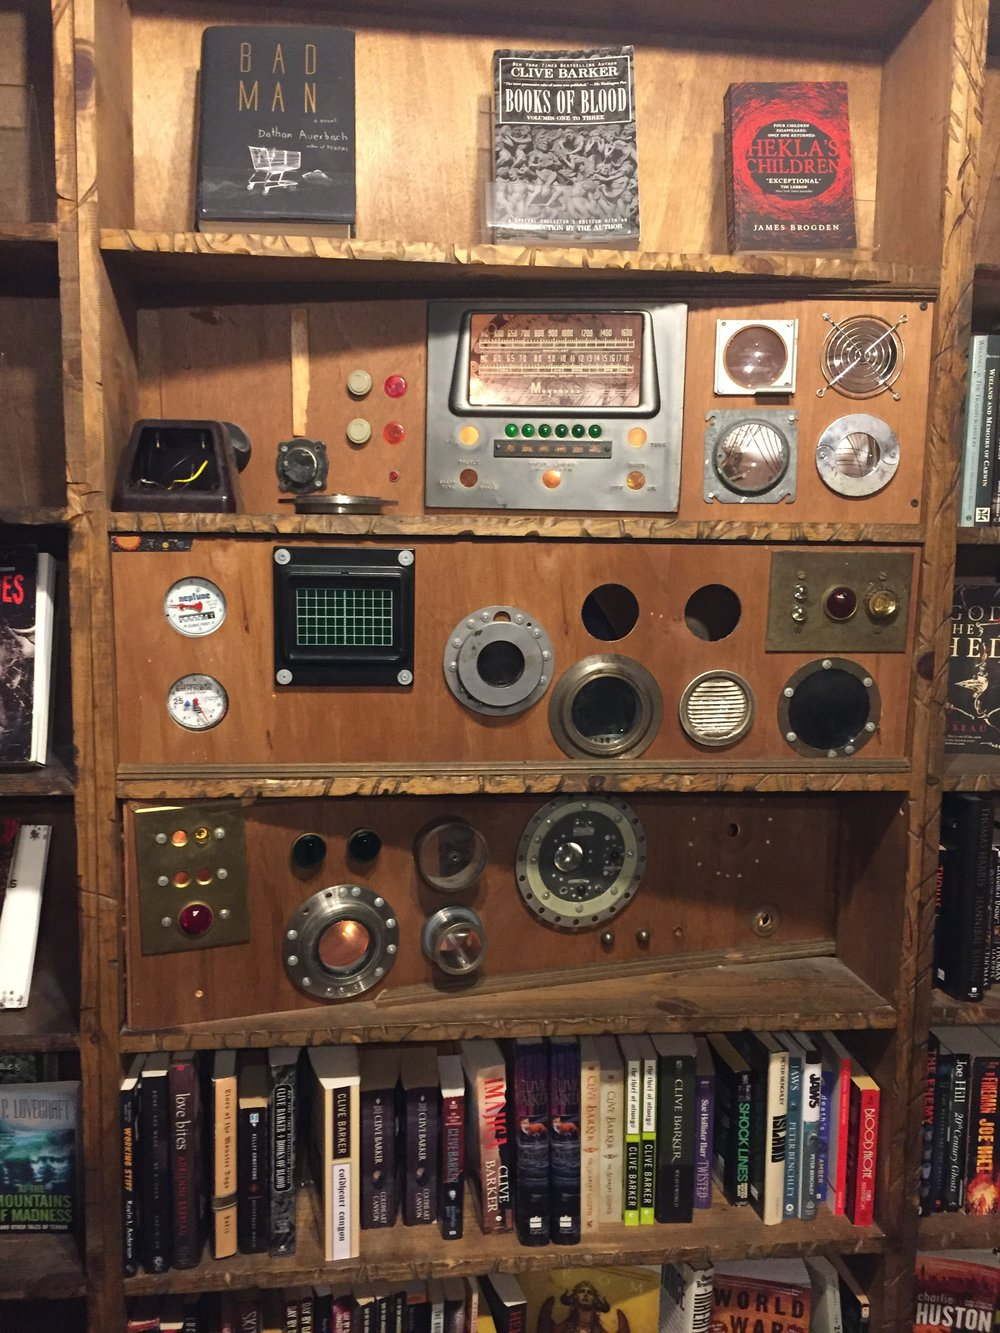 [image description: A sculpture built into a bookshelf. It's a series of portholes, dials, radio knobs, switches, and gages all put together haphazardly.]